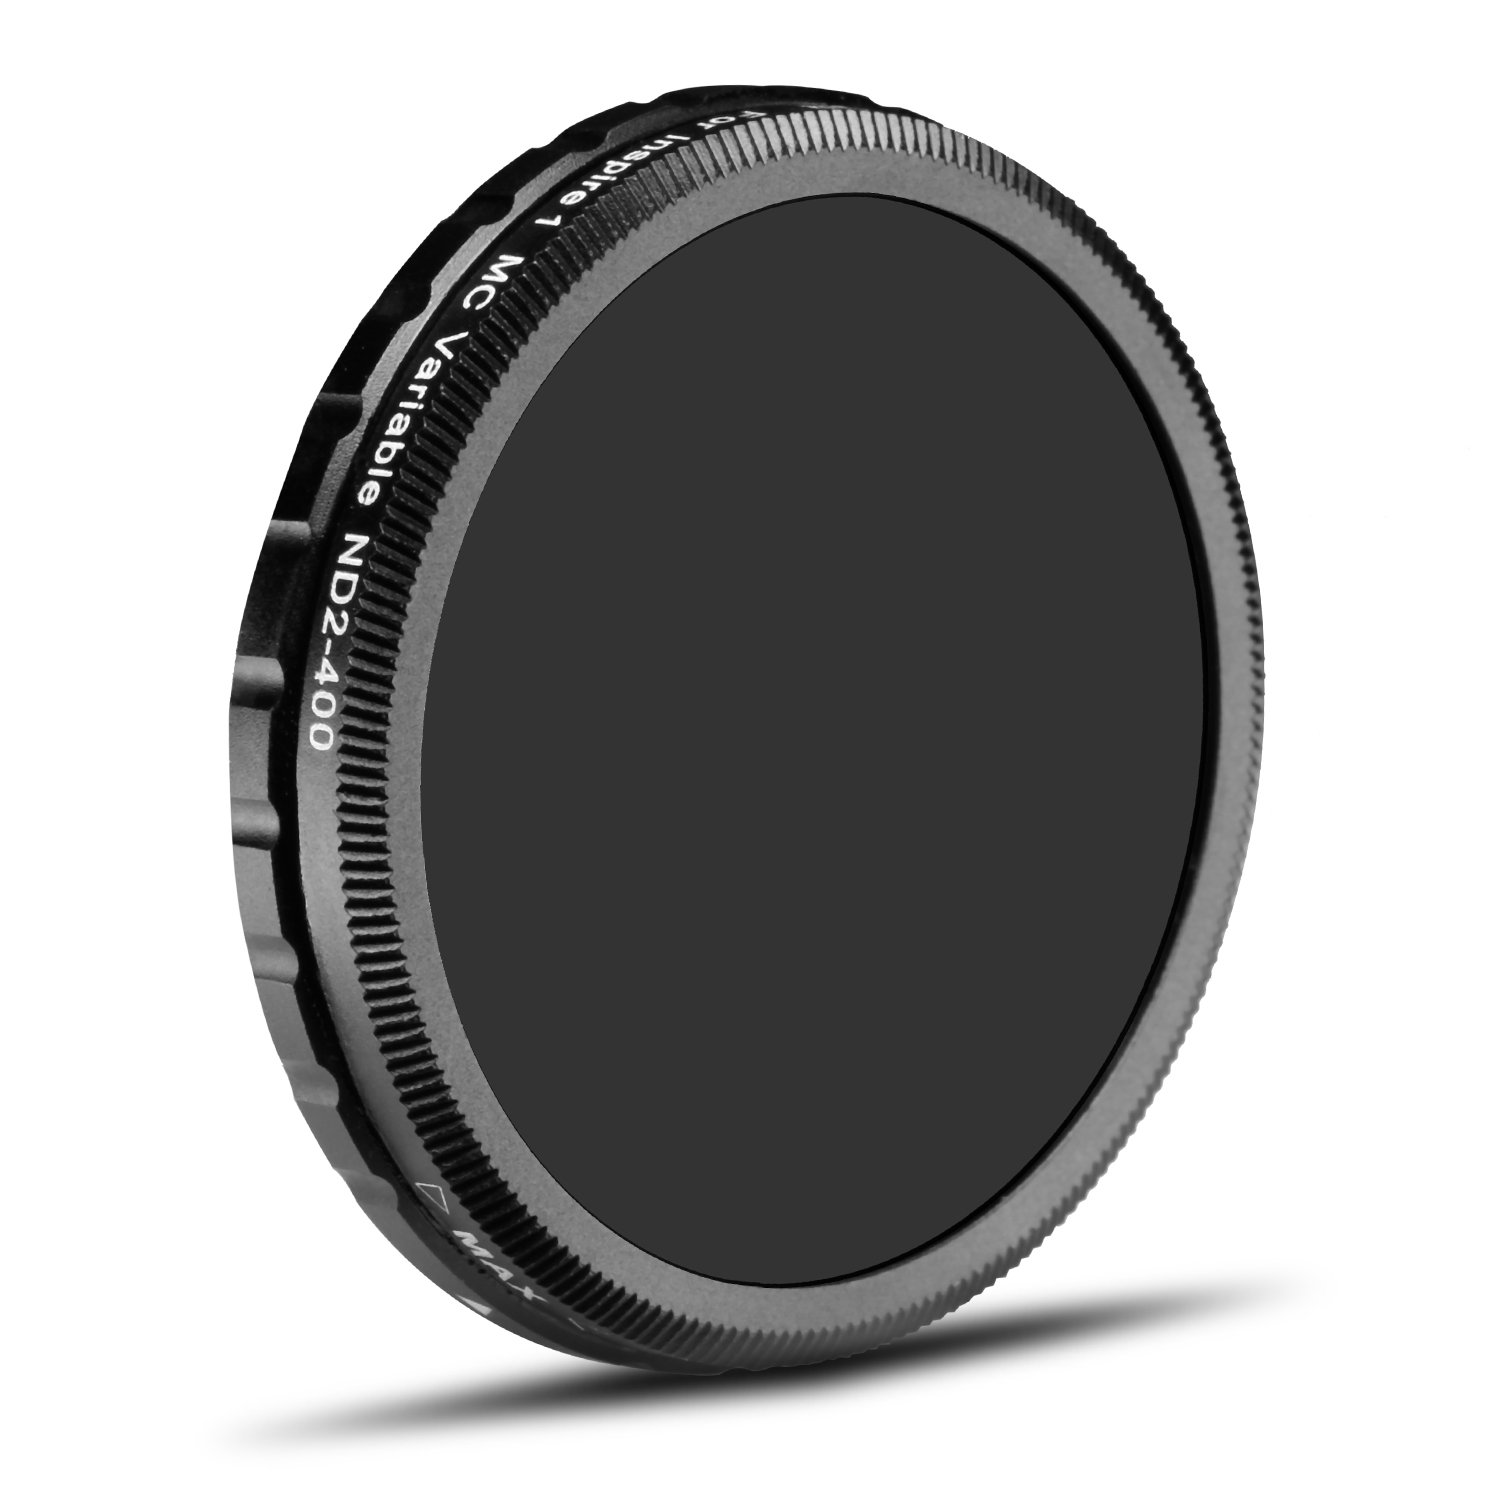 Neewer® for DJI Inspire 1 ND2-ND400 Neutral Density Adjustable Variable Filter Made of High Definition Optical Glass